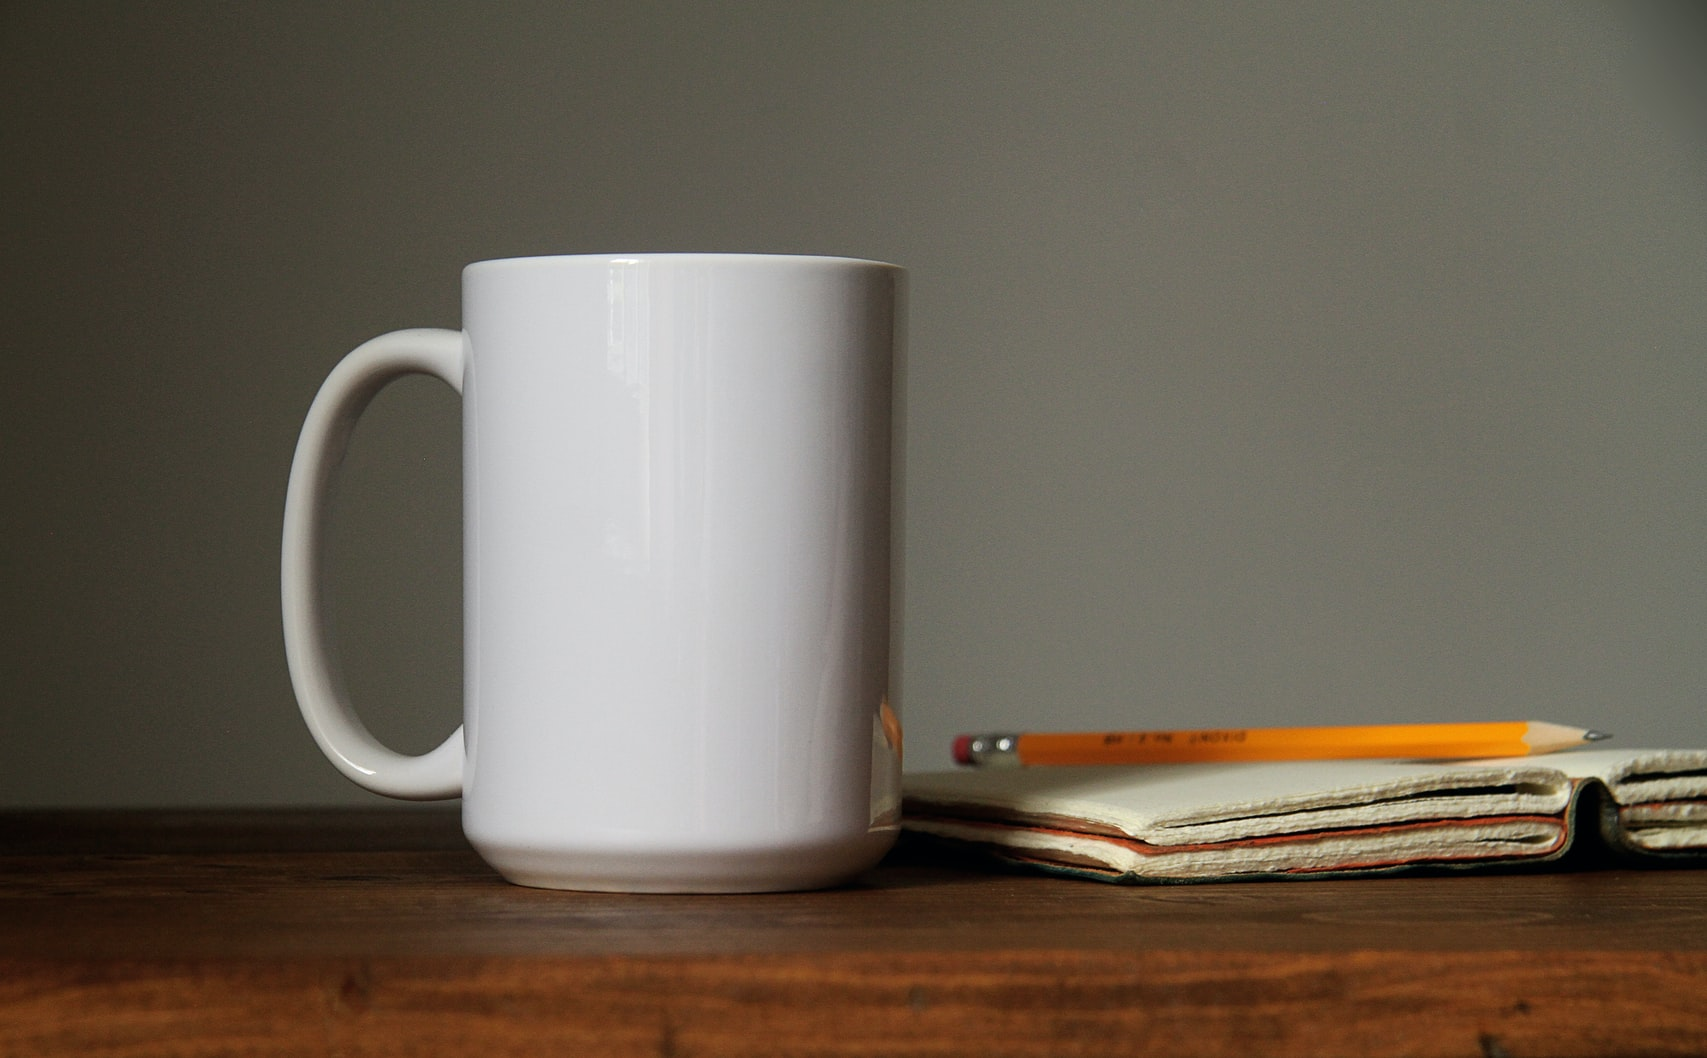 Design Your Own Mug: Drink In Style